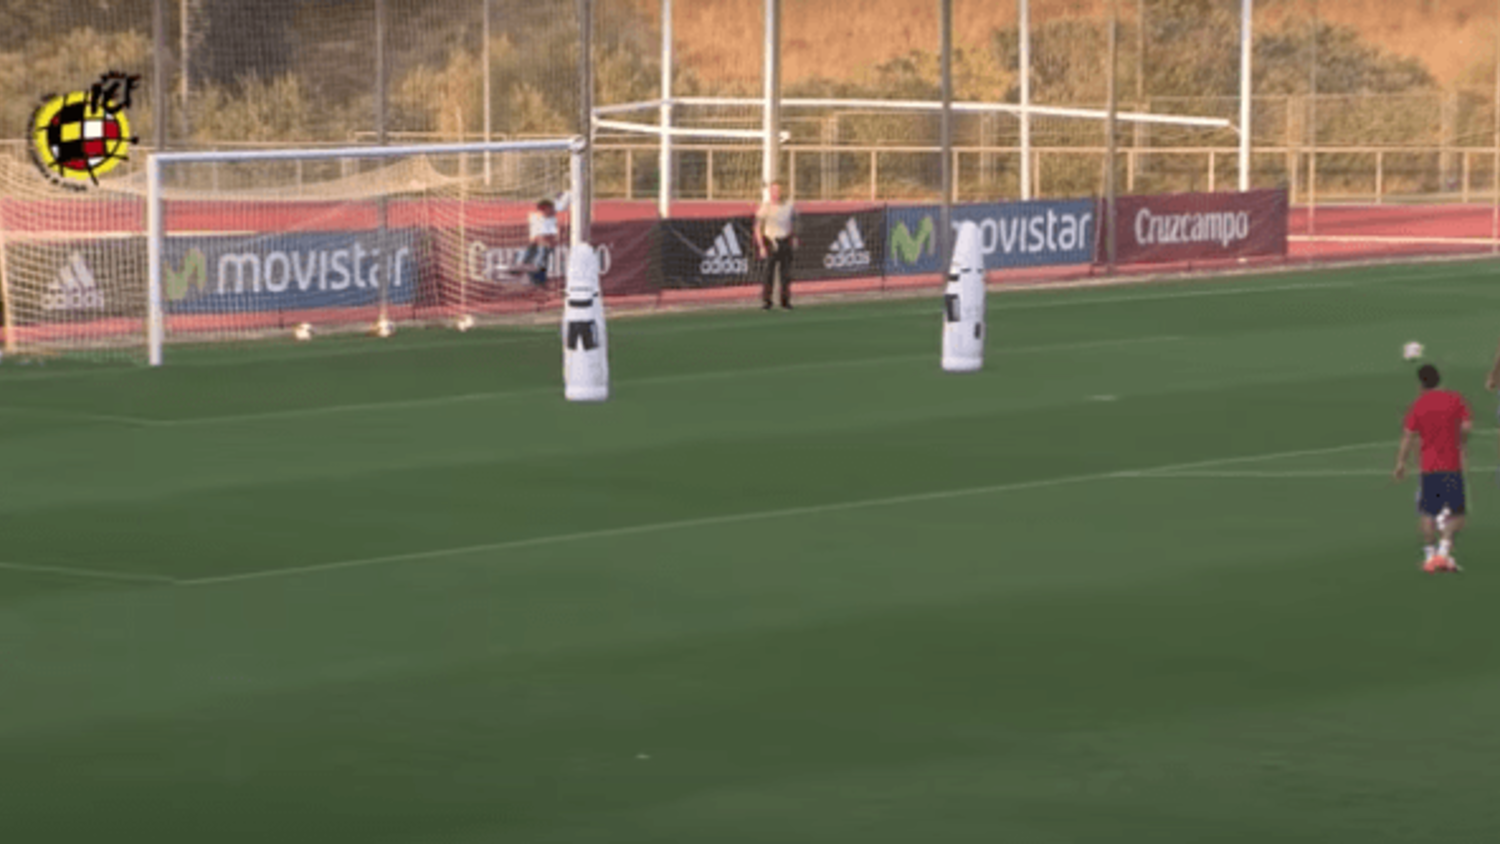 Alvaro Morata shows off goalkeeping skills in training with Spain